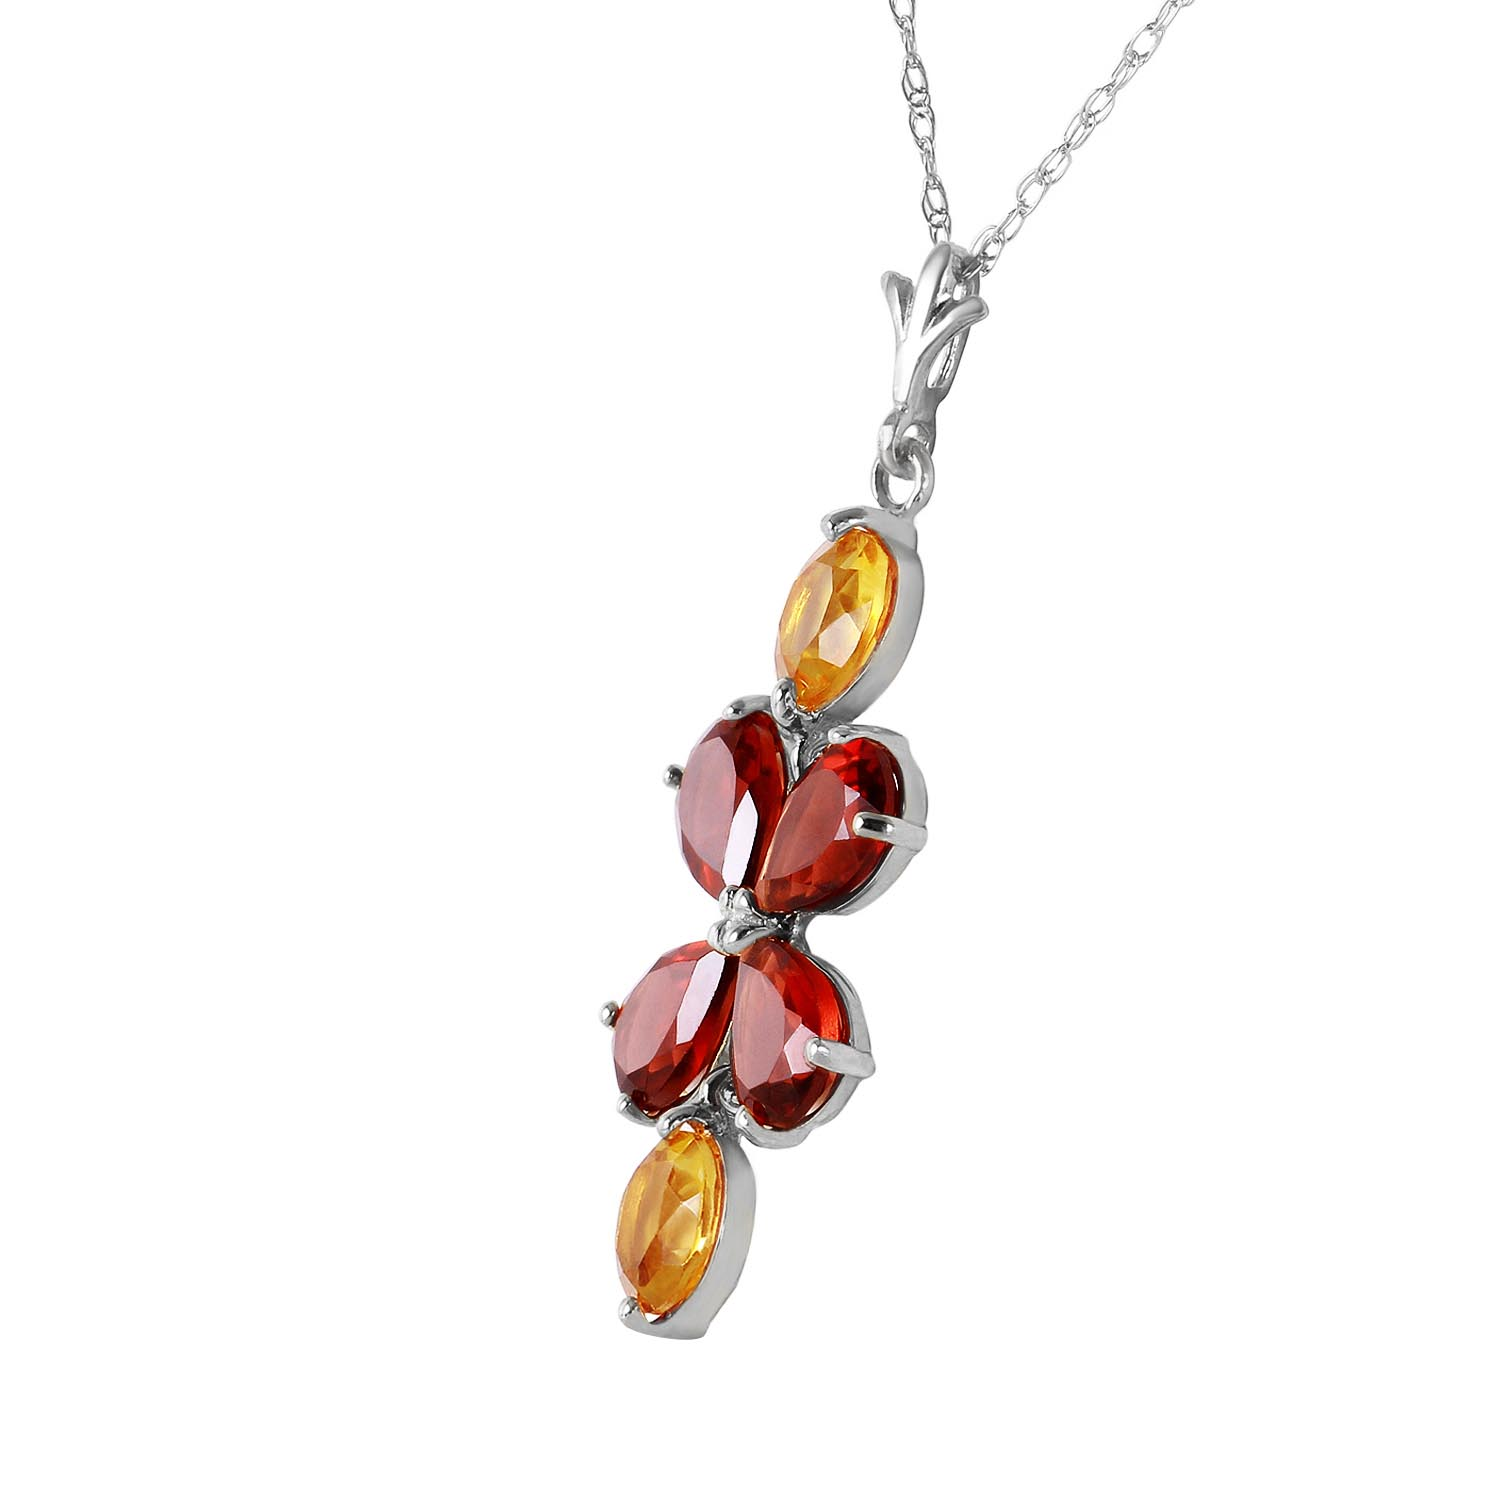 Garnet and Citrine Blossom Pendant Necklace 3.15ctw in 9ct White Gold